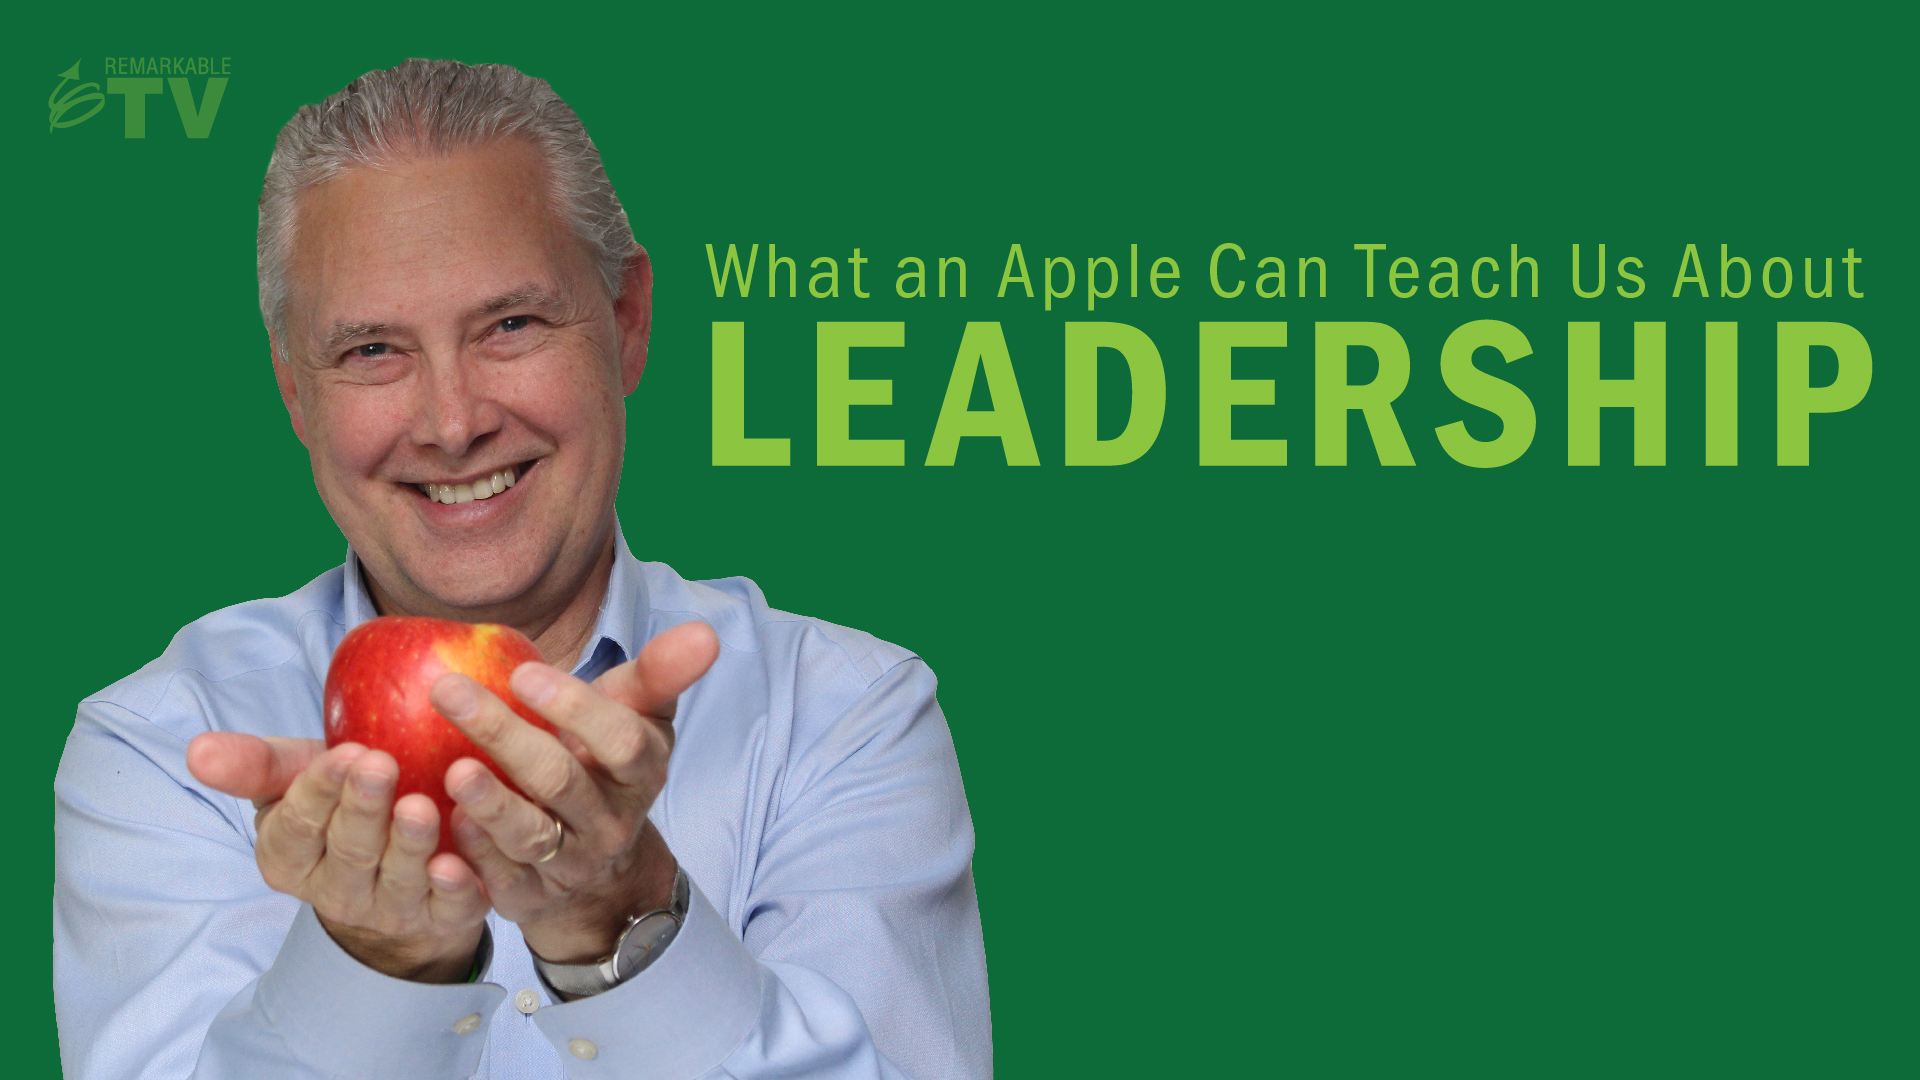 A Video Splash Image for What an Apple Can Teach Us About Leadership